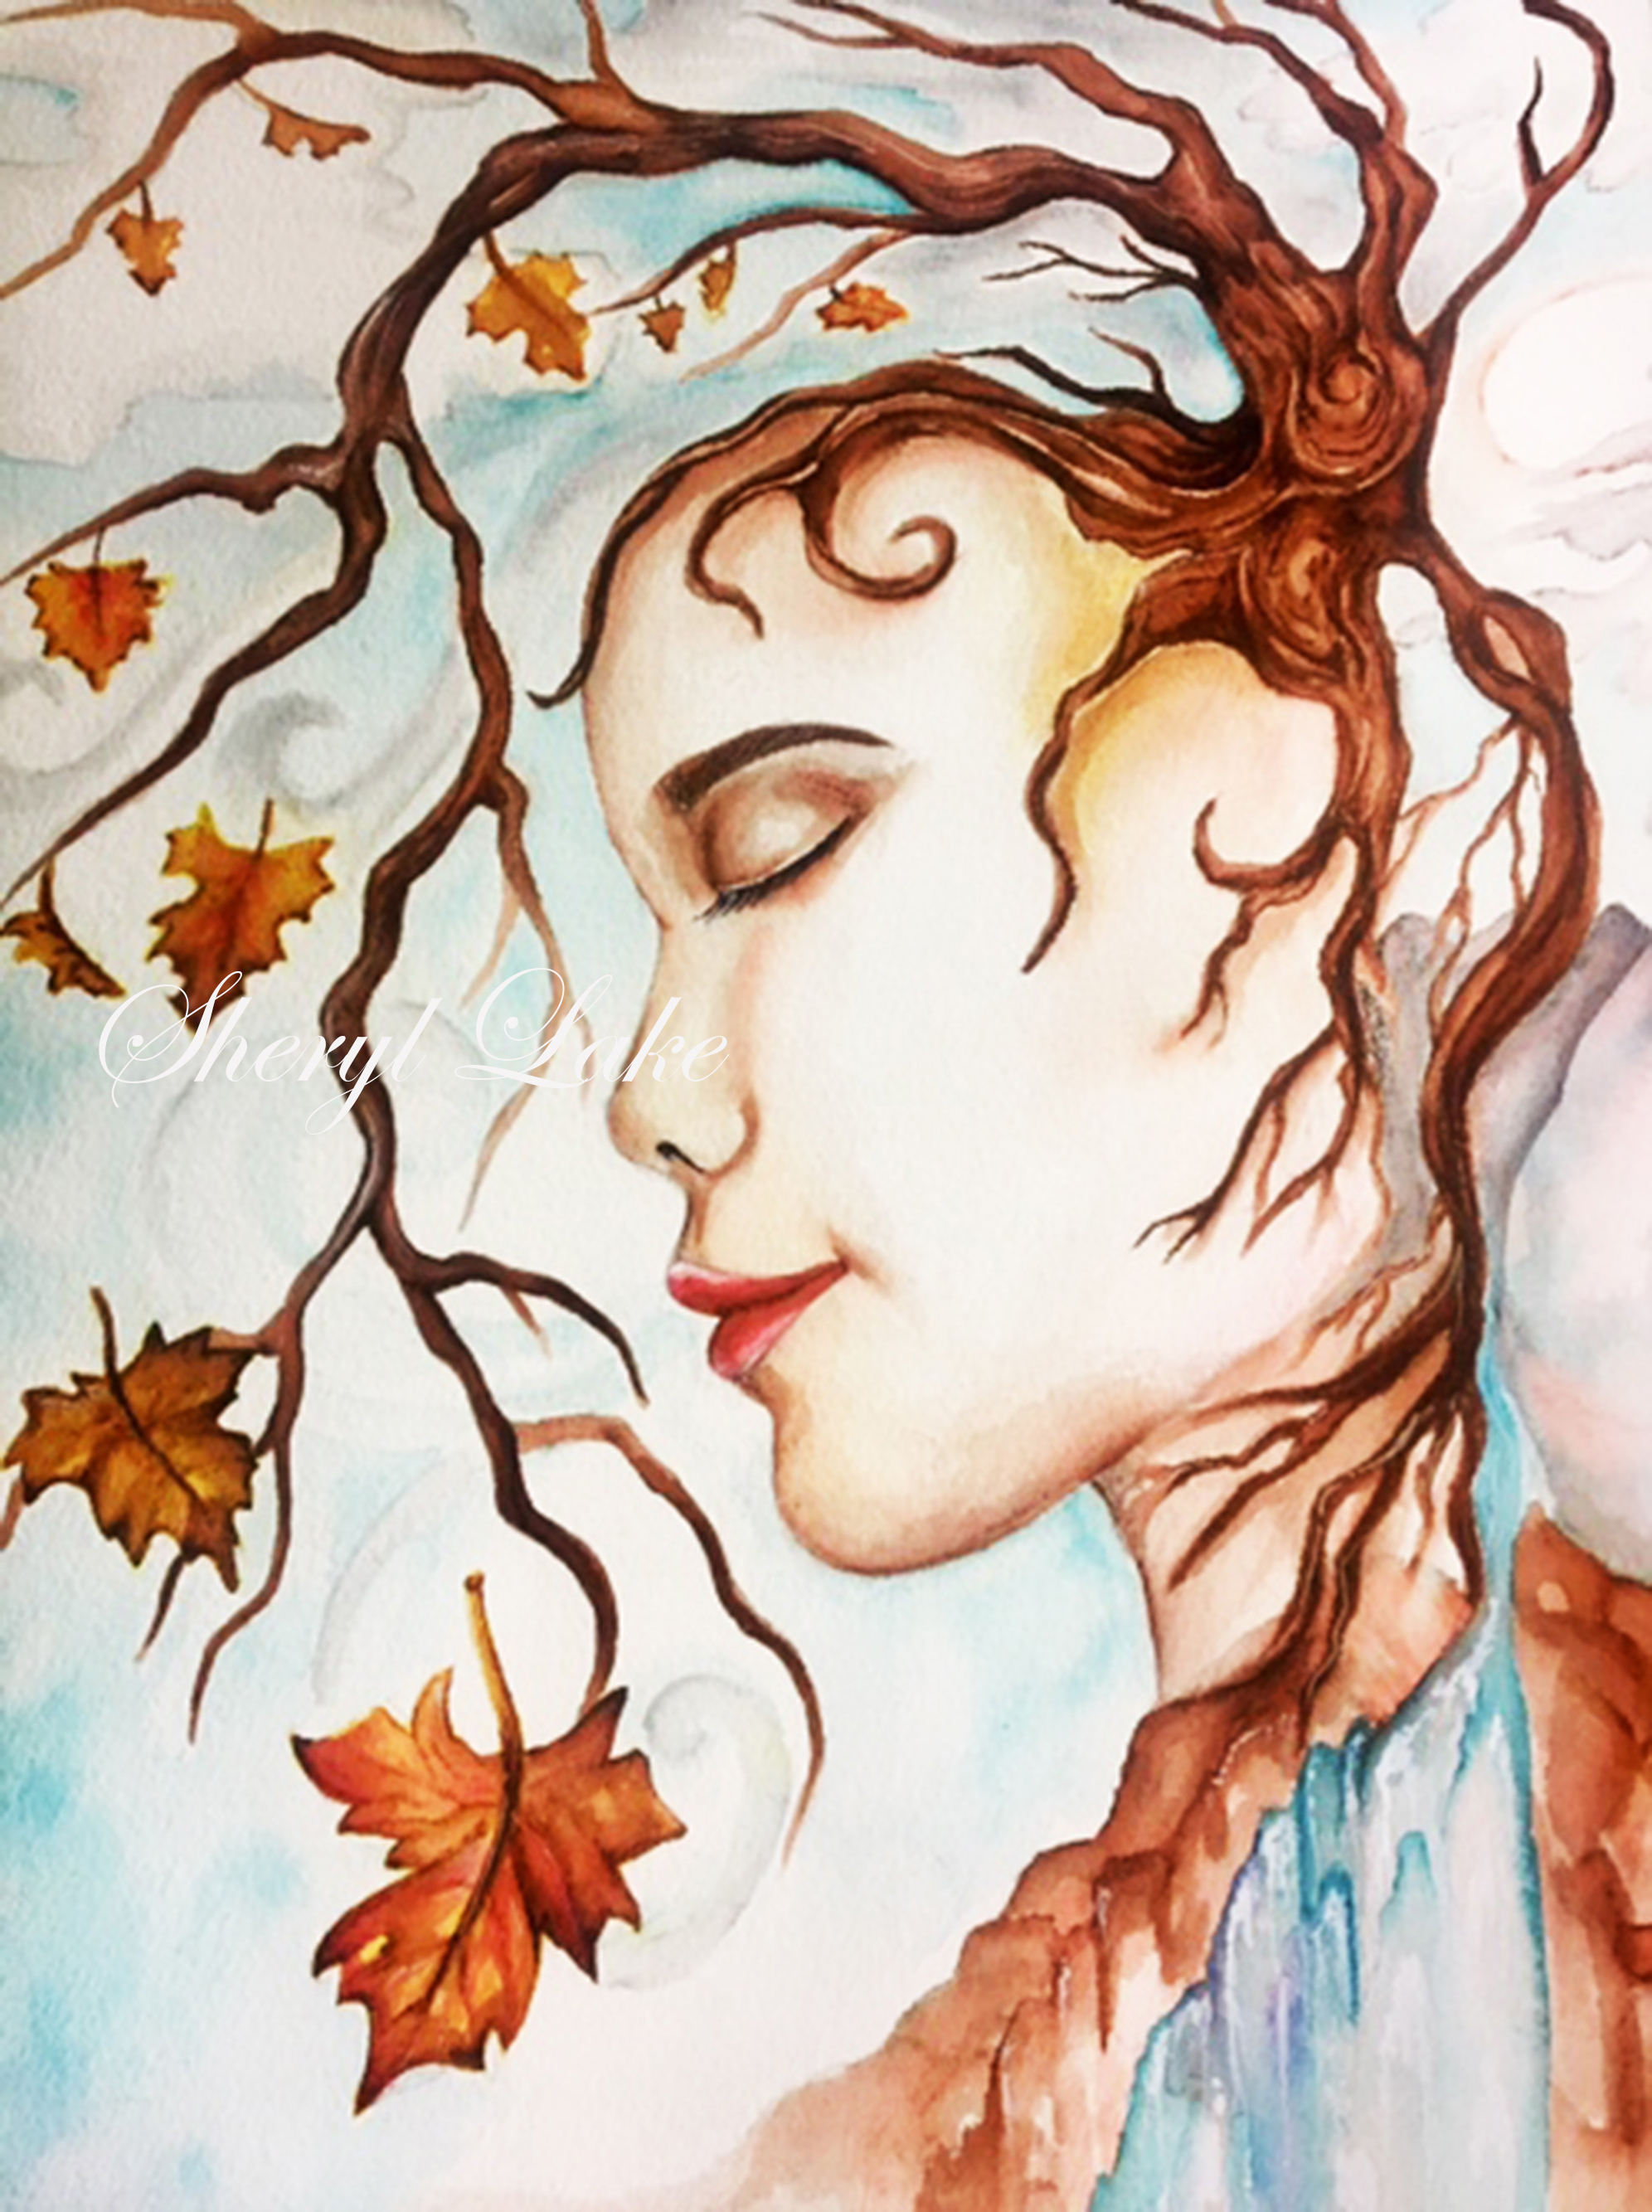 Autumn, with watermark